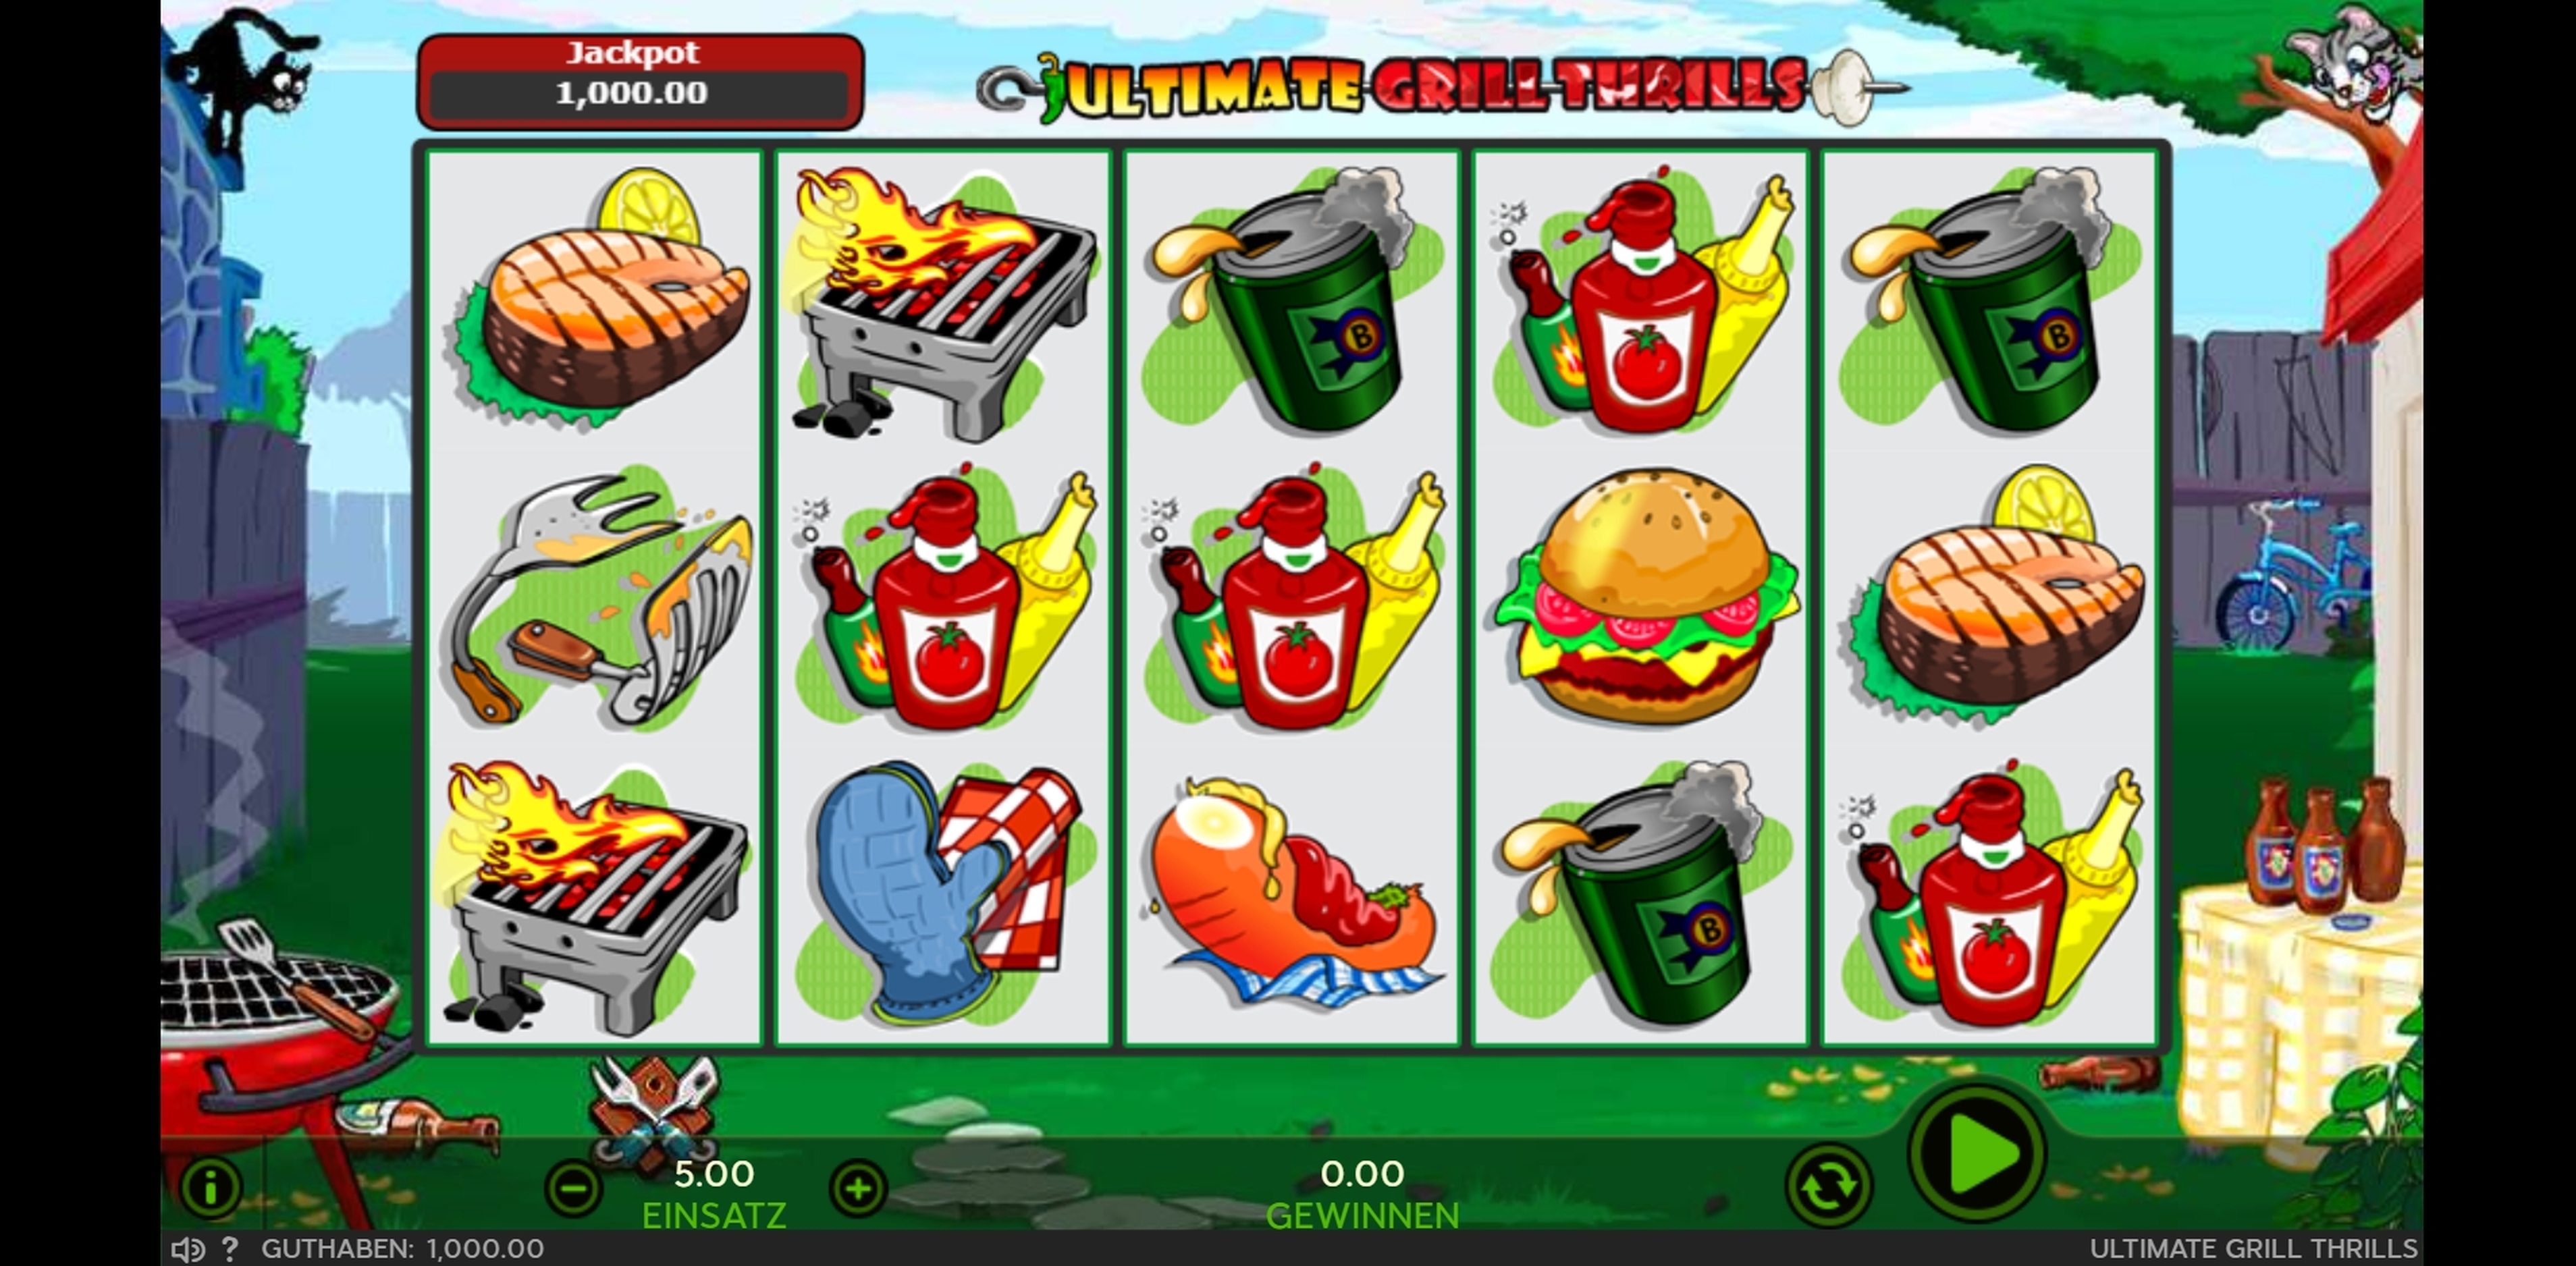 Reels in Ultimate Grill Thrills Slot Game by 888 Gaming